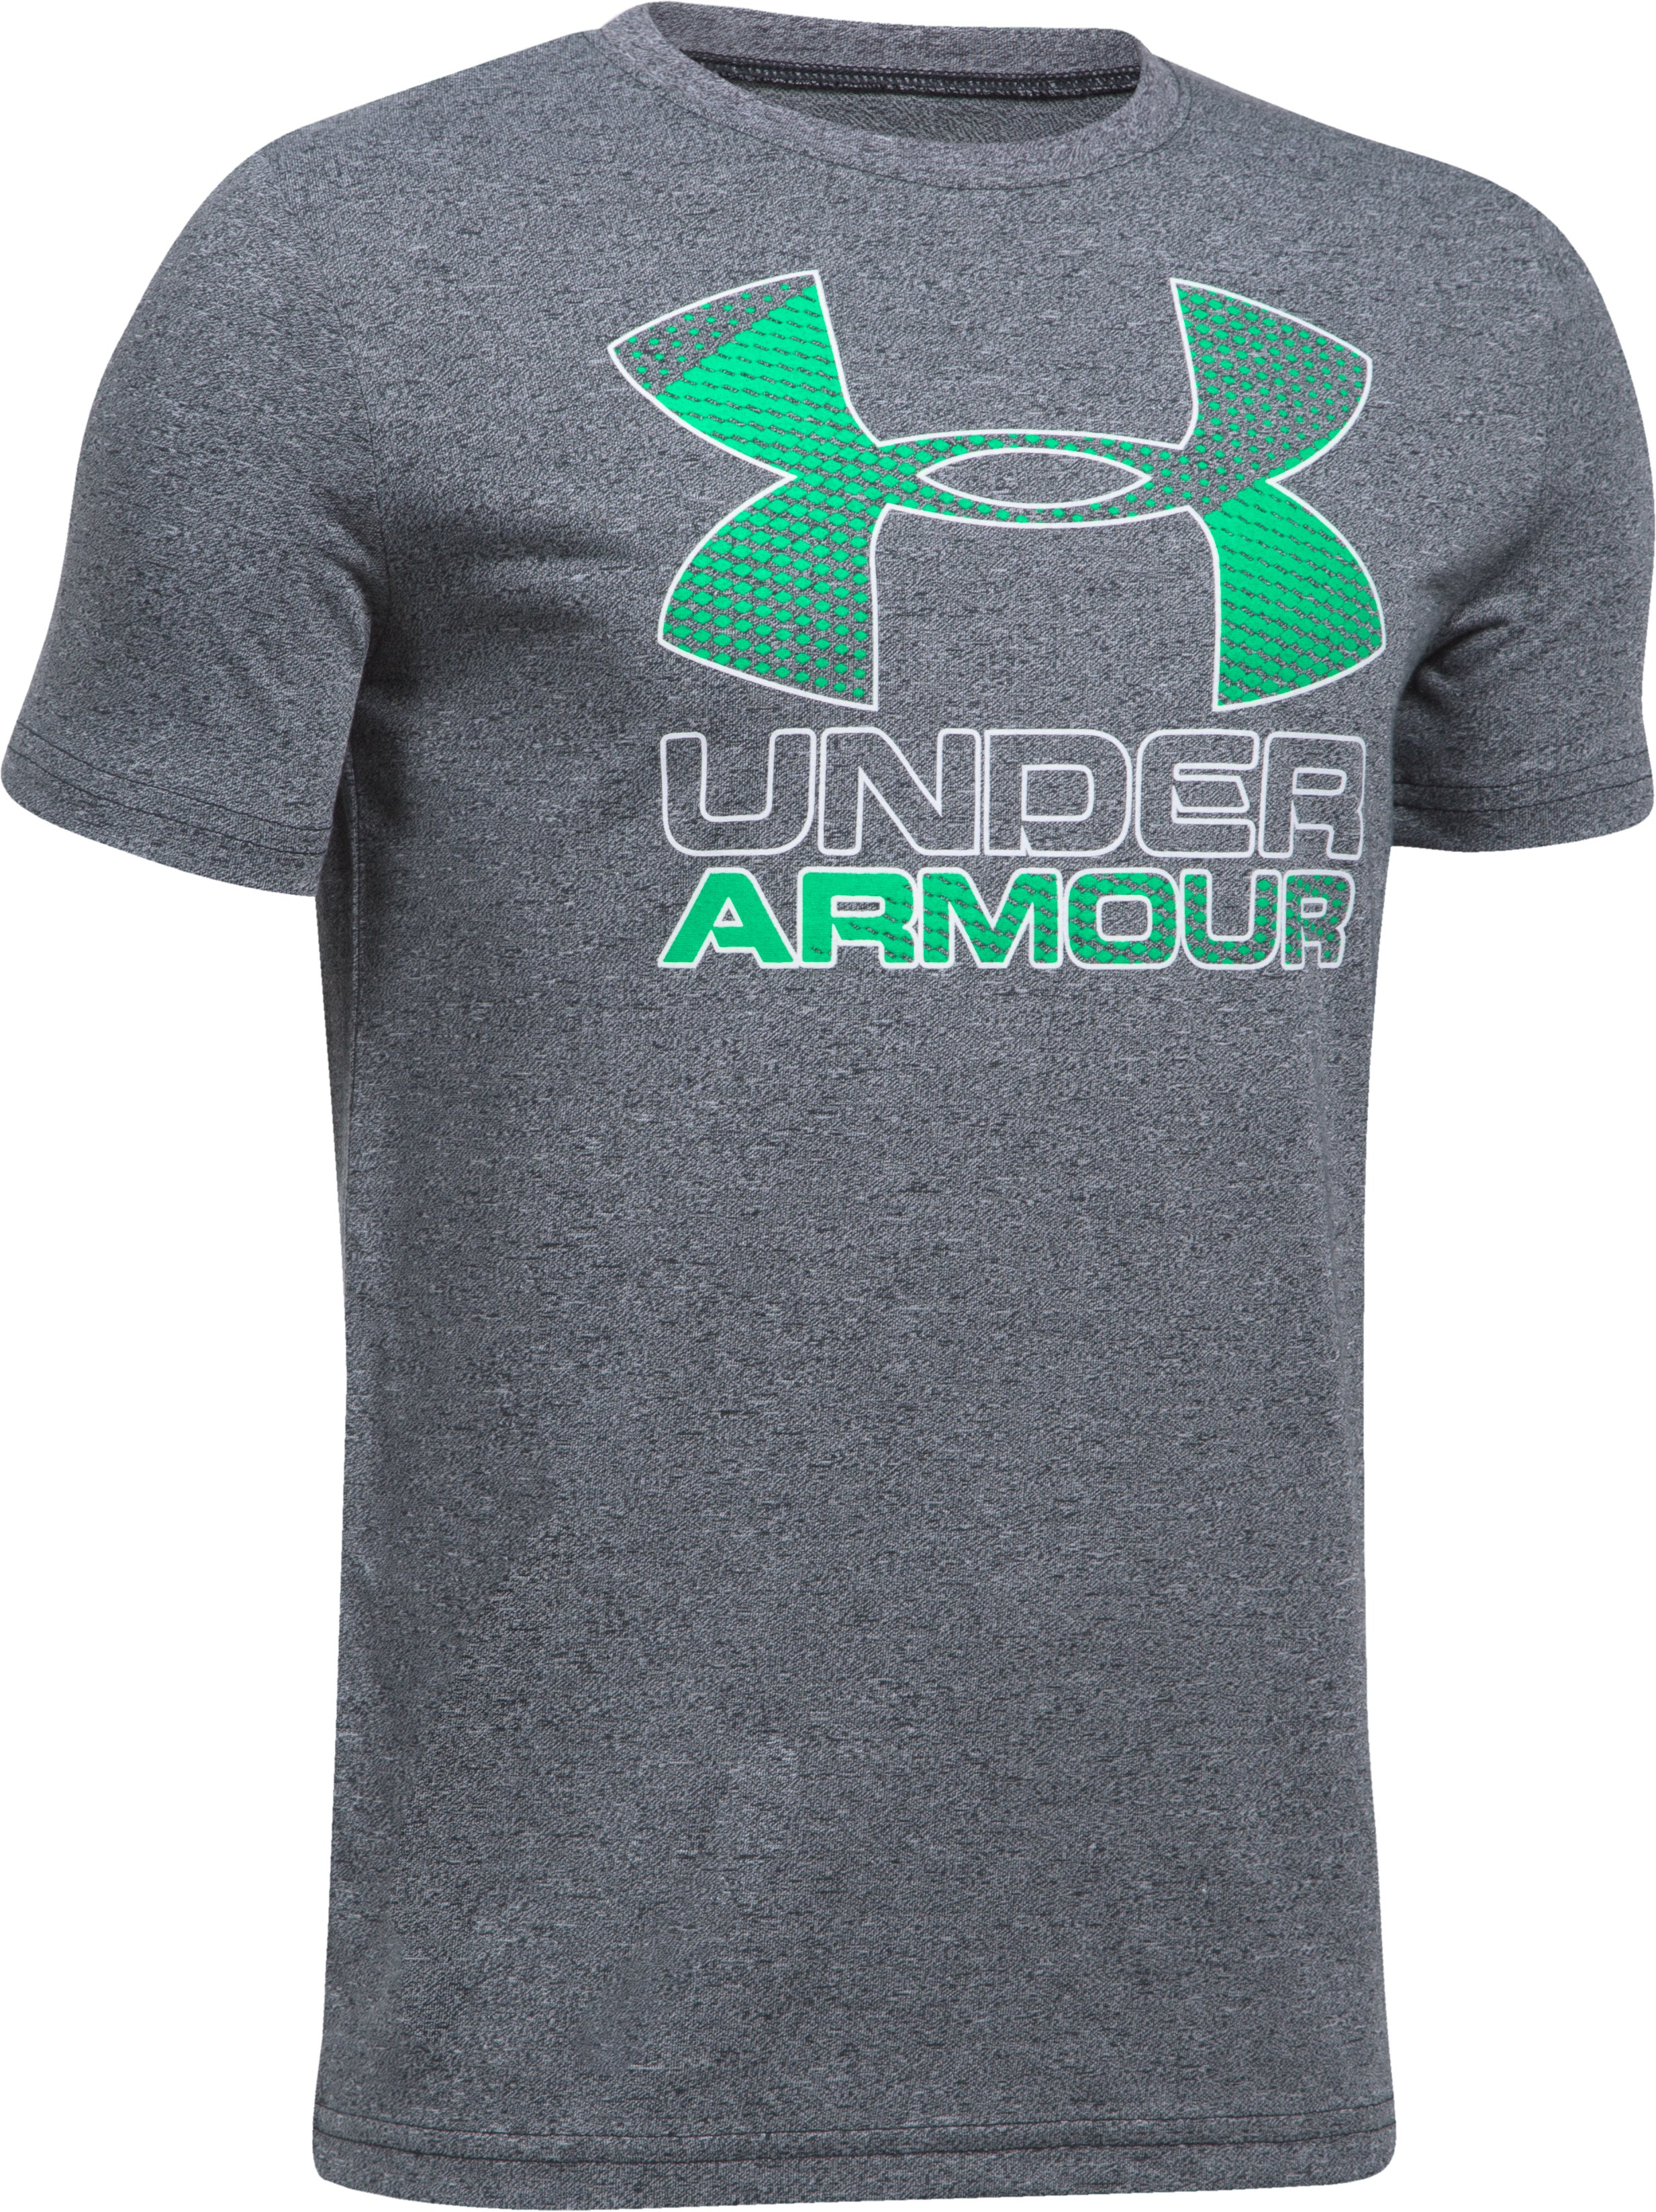 Boys' UA Hybrid Big Logo T-Shirt 5 Colors $12.50 - $18.99